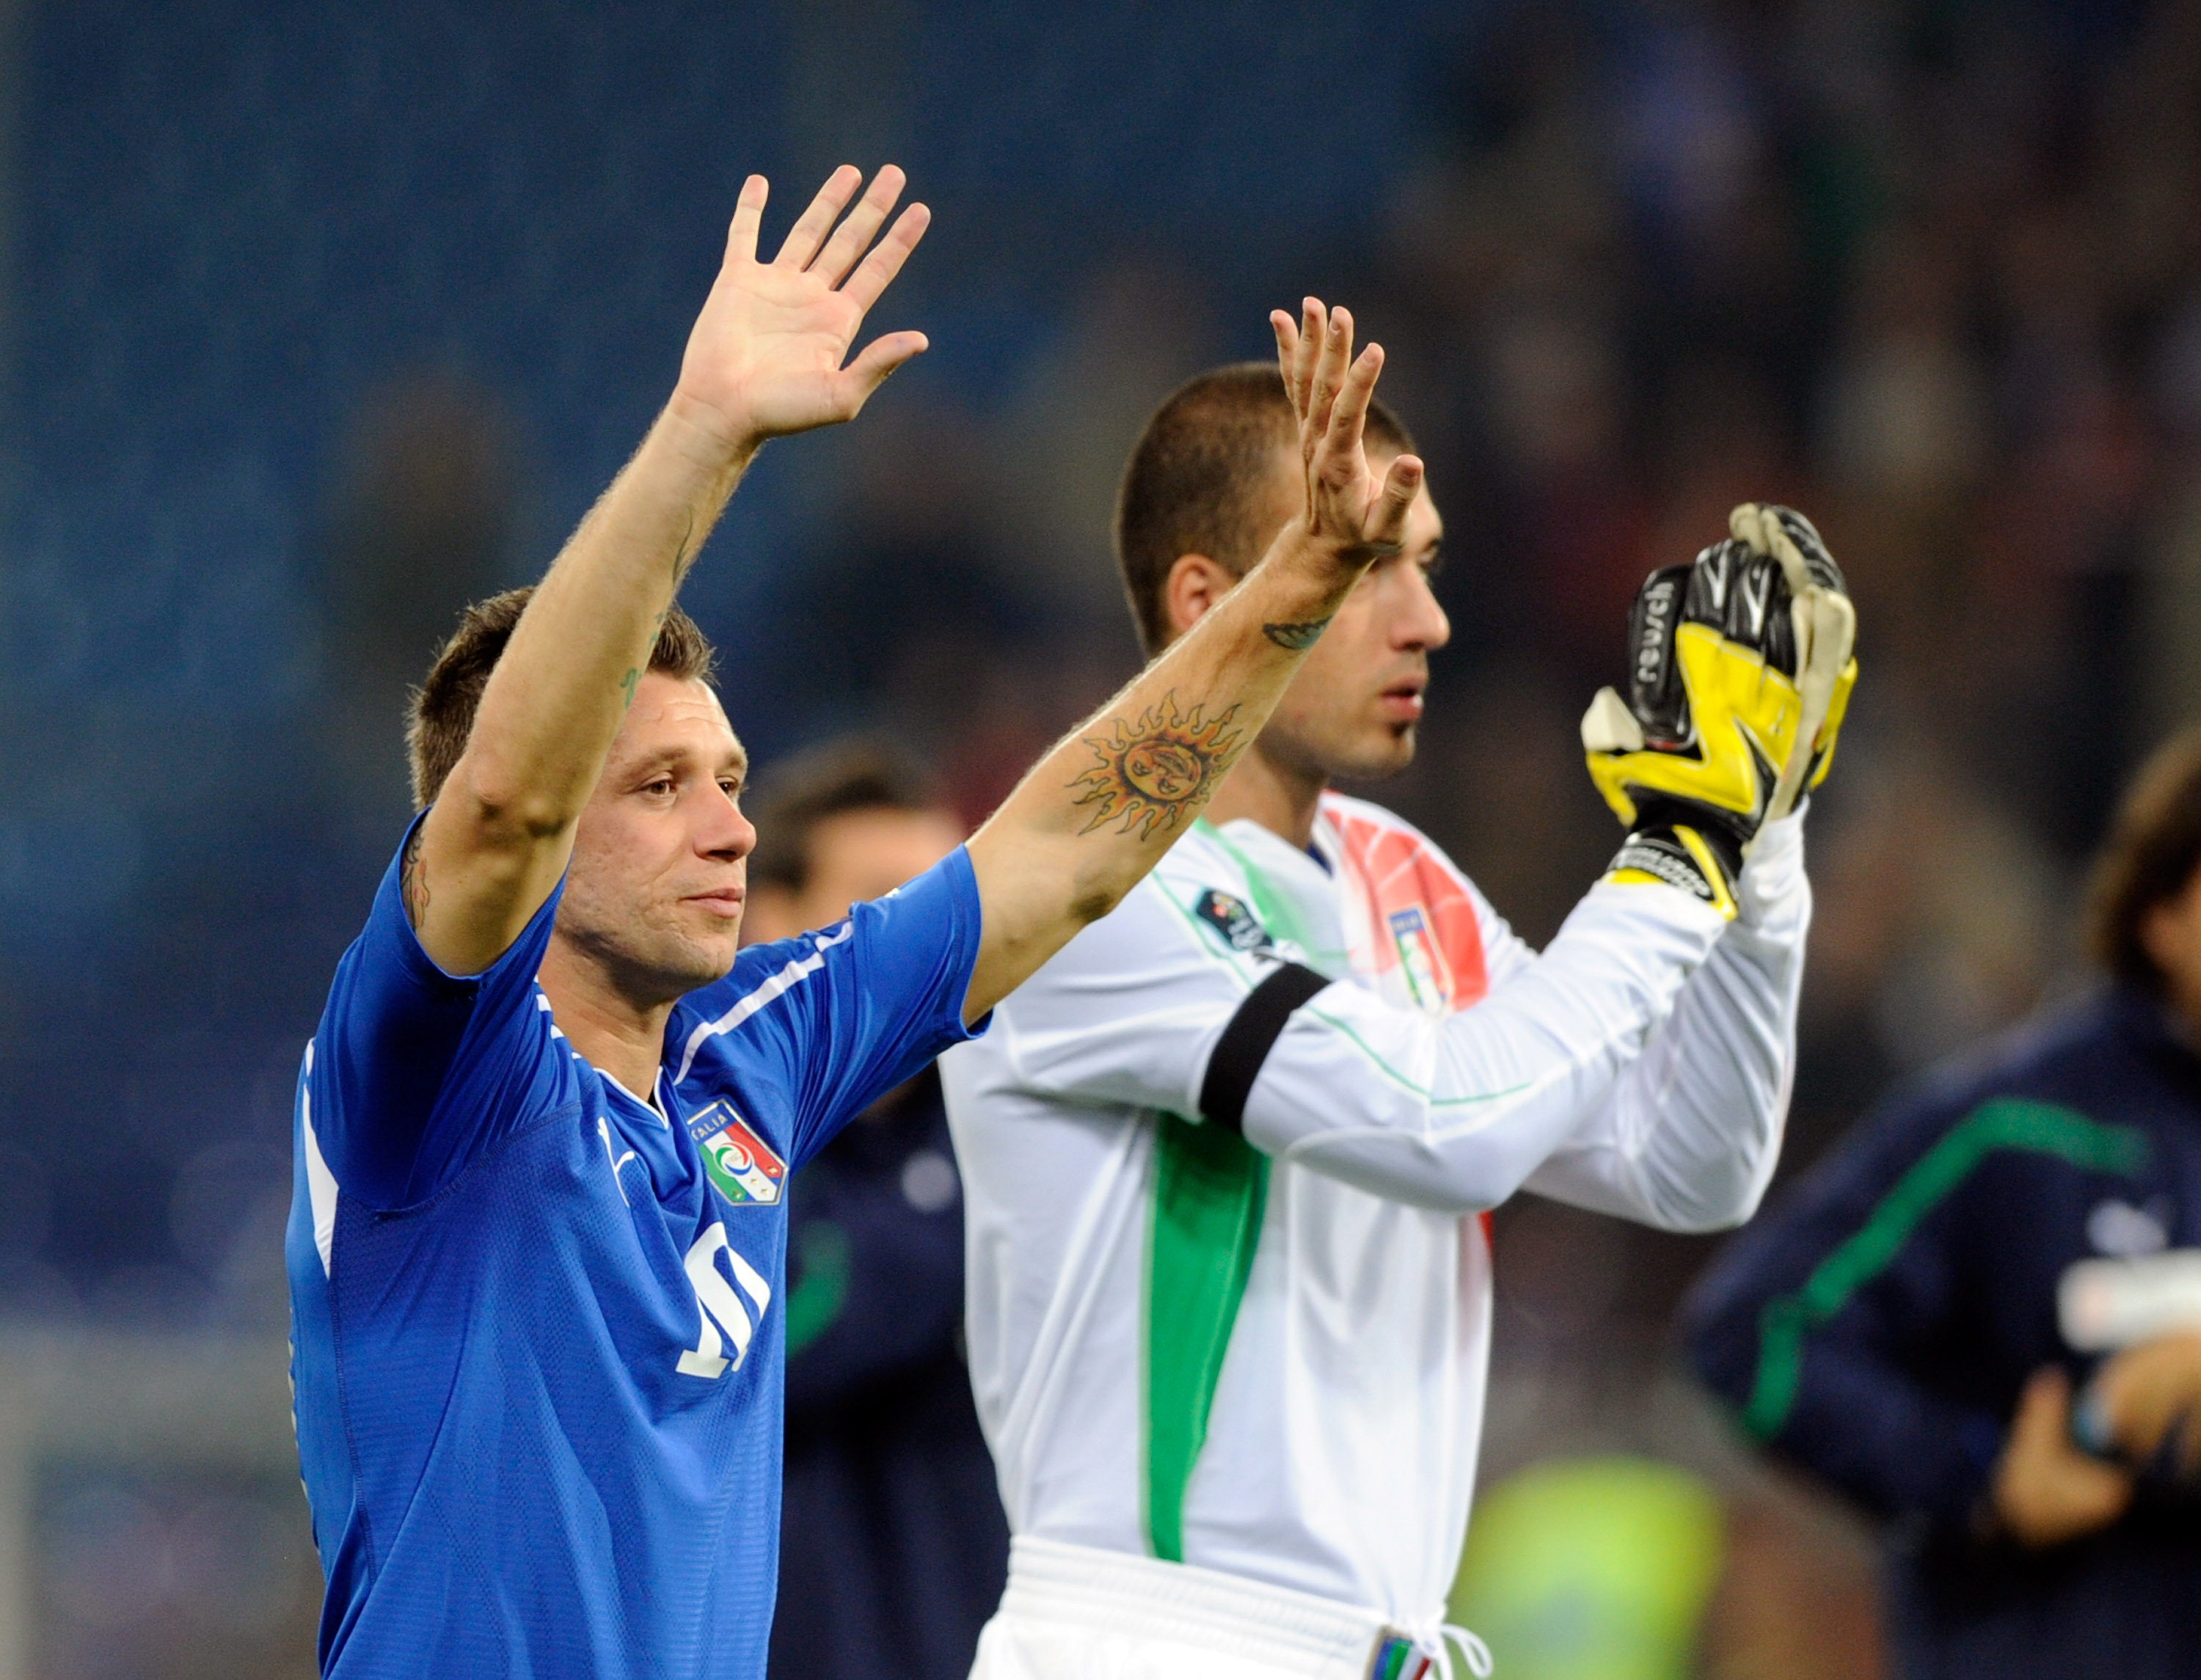 GENOA, ITALY - OCTOBER 12:  Antonio Cassano and Emiliano Viviano of Italy applaud the Italian fans during the UEFA EURO 2012 Group C qualifier  between Italy and Serbia at Luigi Ferraris Stadium on October 12, 2010 in Genoa, Italy.  (Photo by Claudio Vill